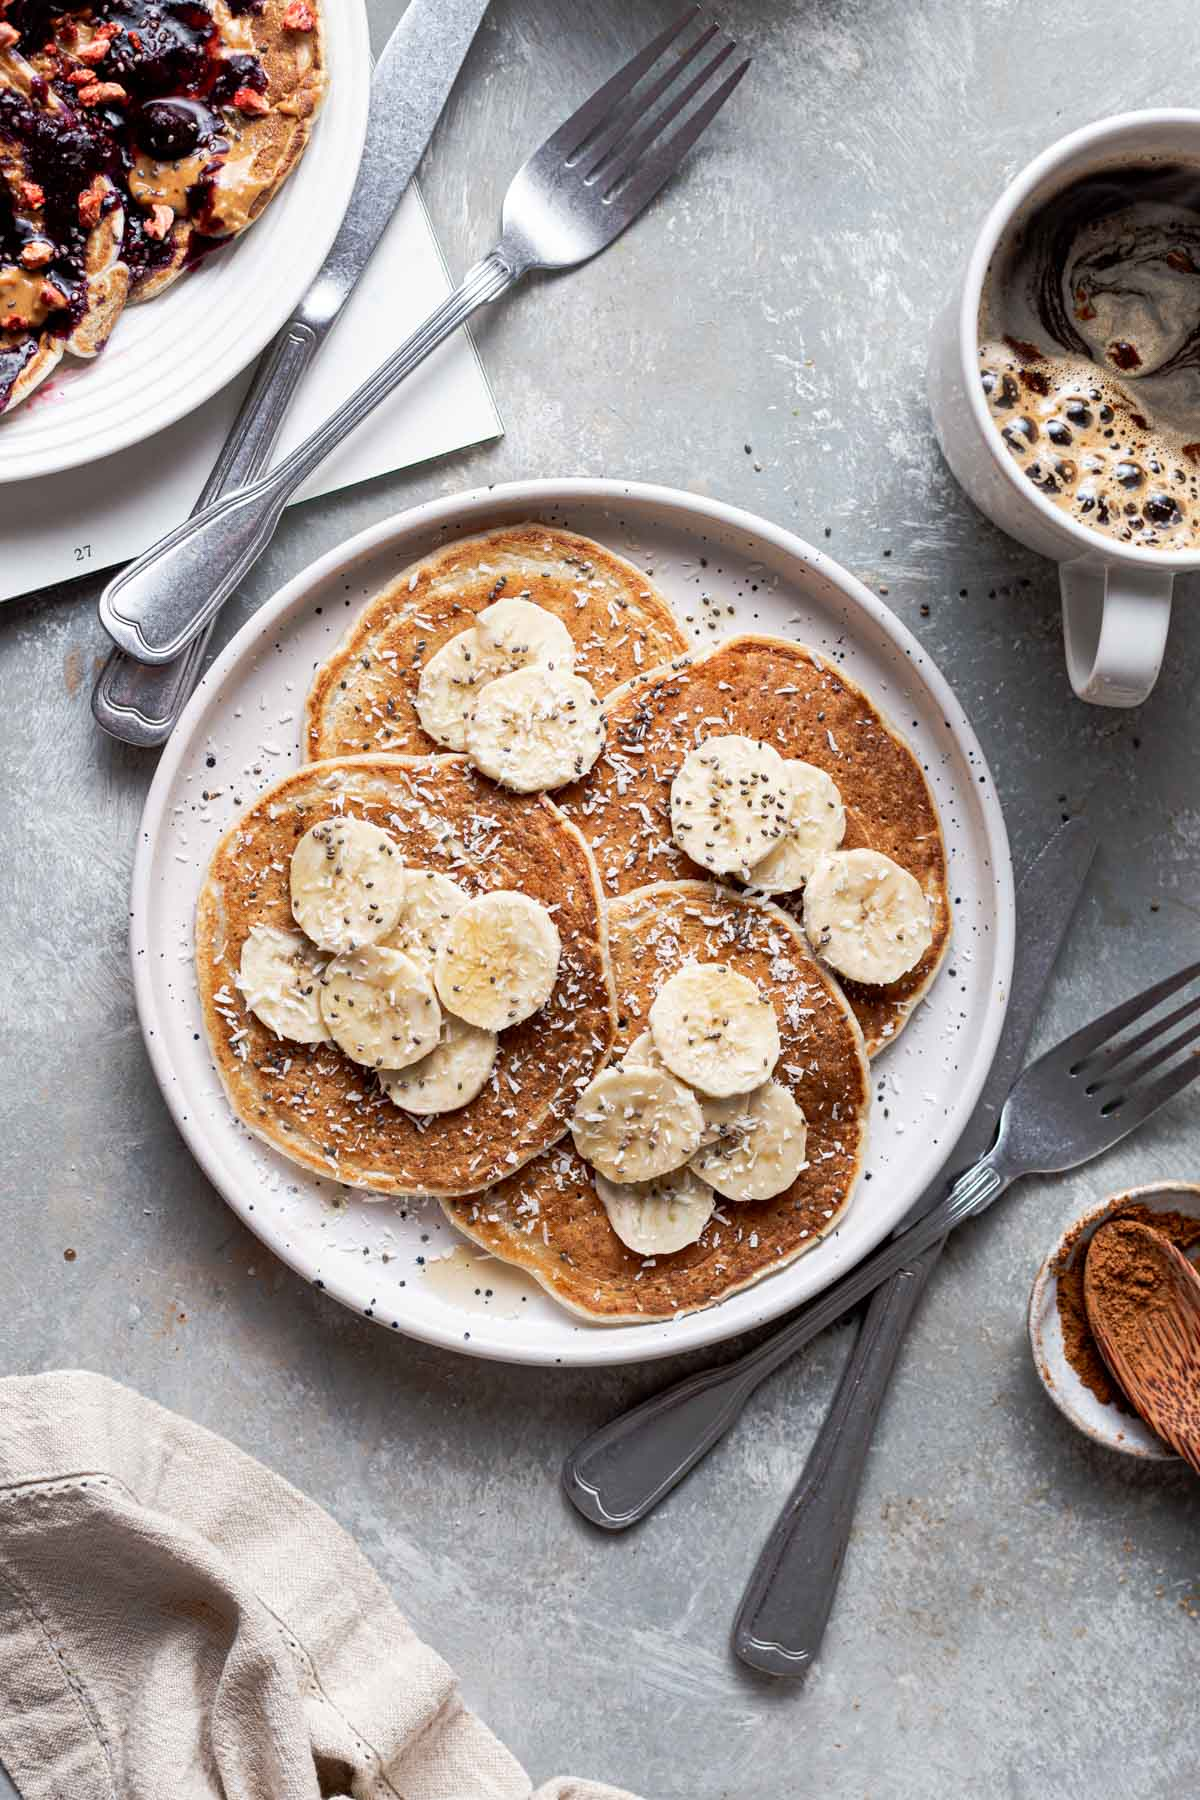 A plate full of vegan pancakes topped off with slices of banana.